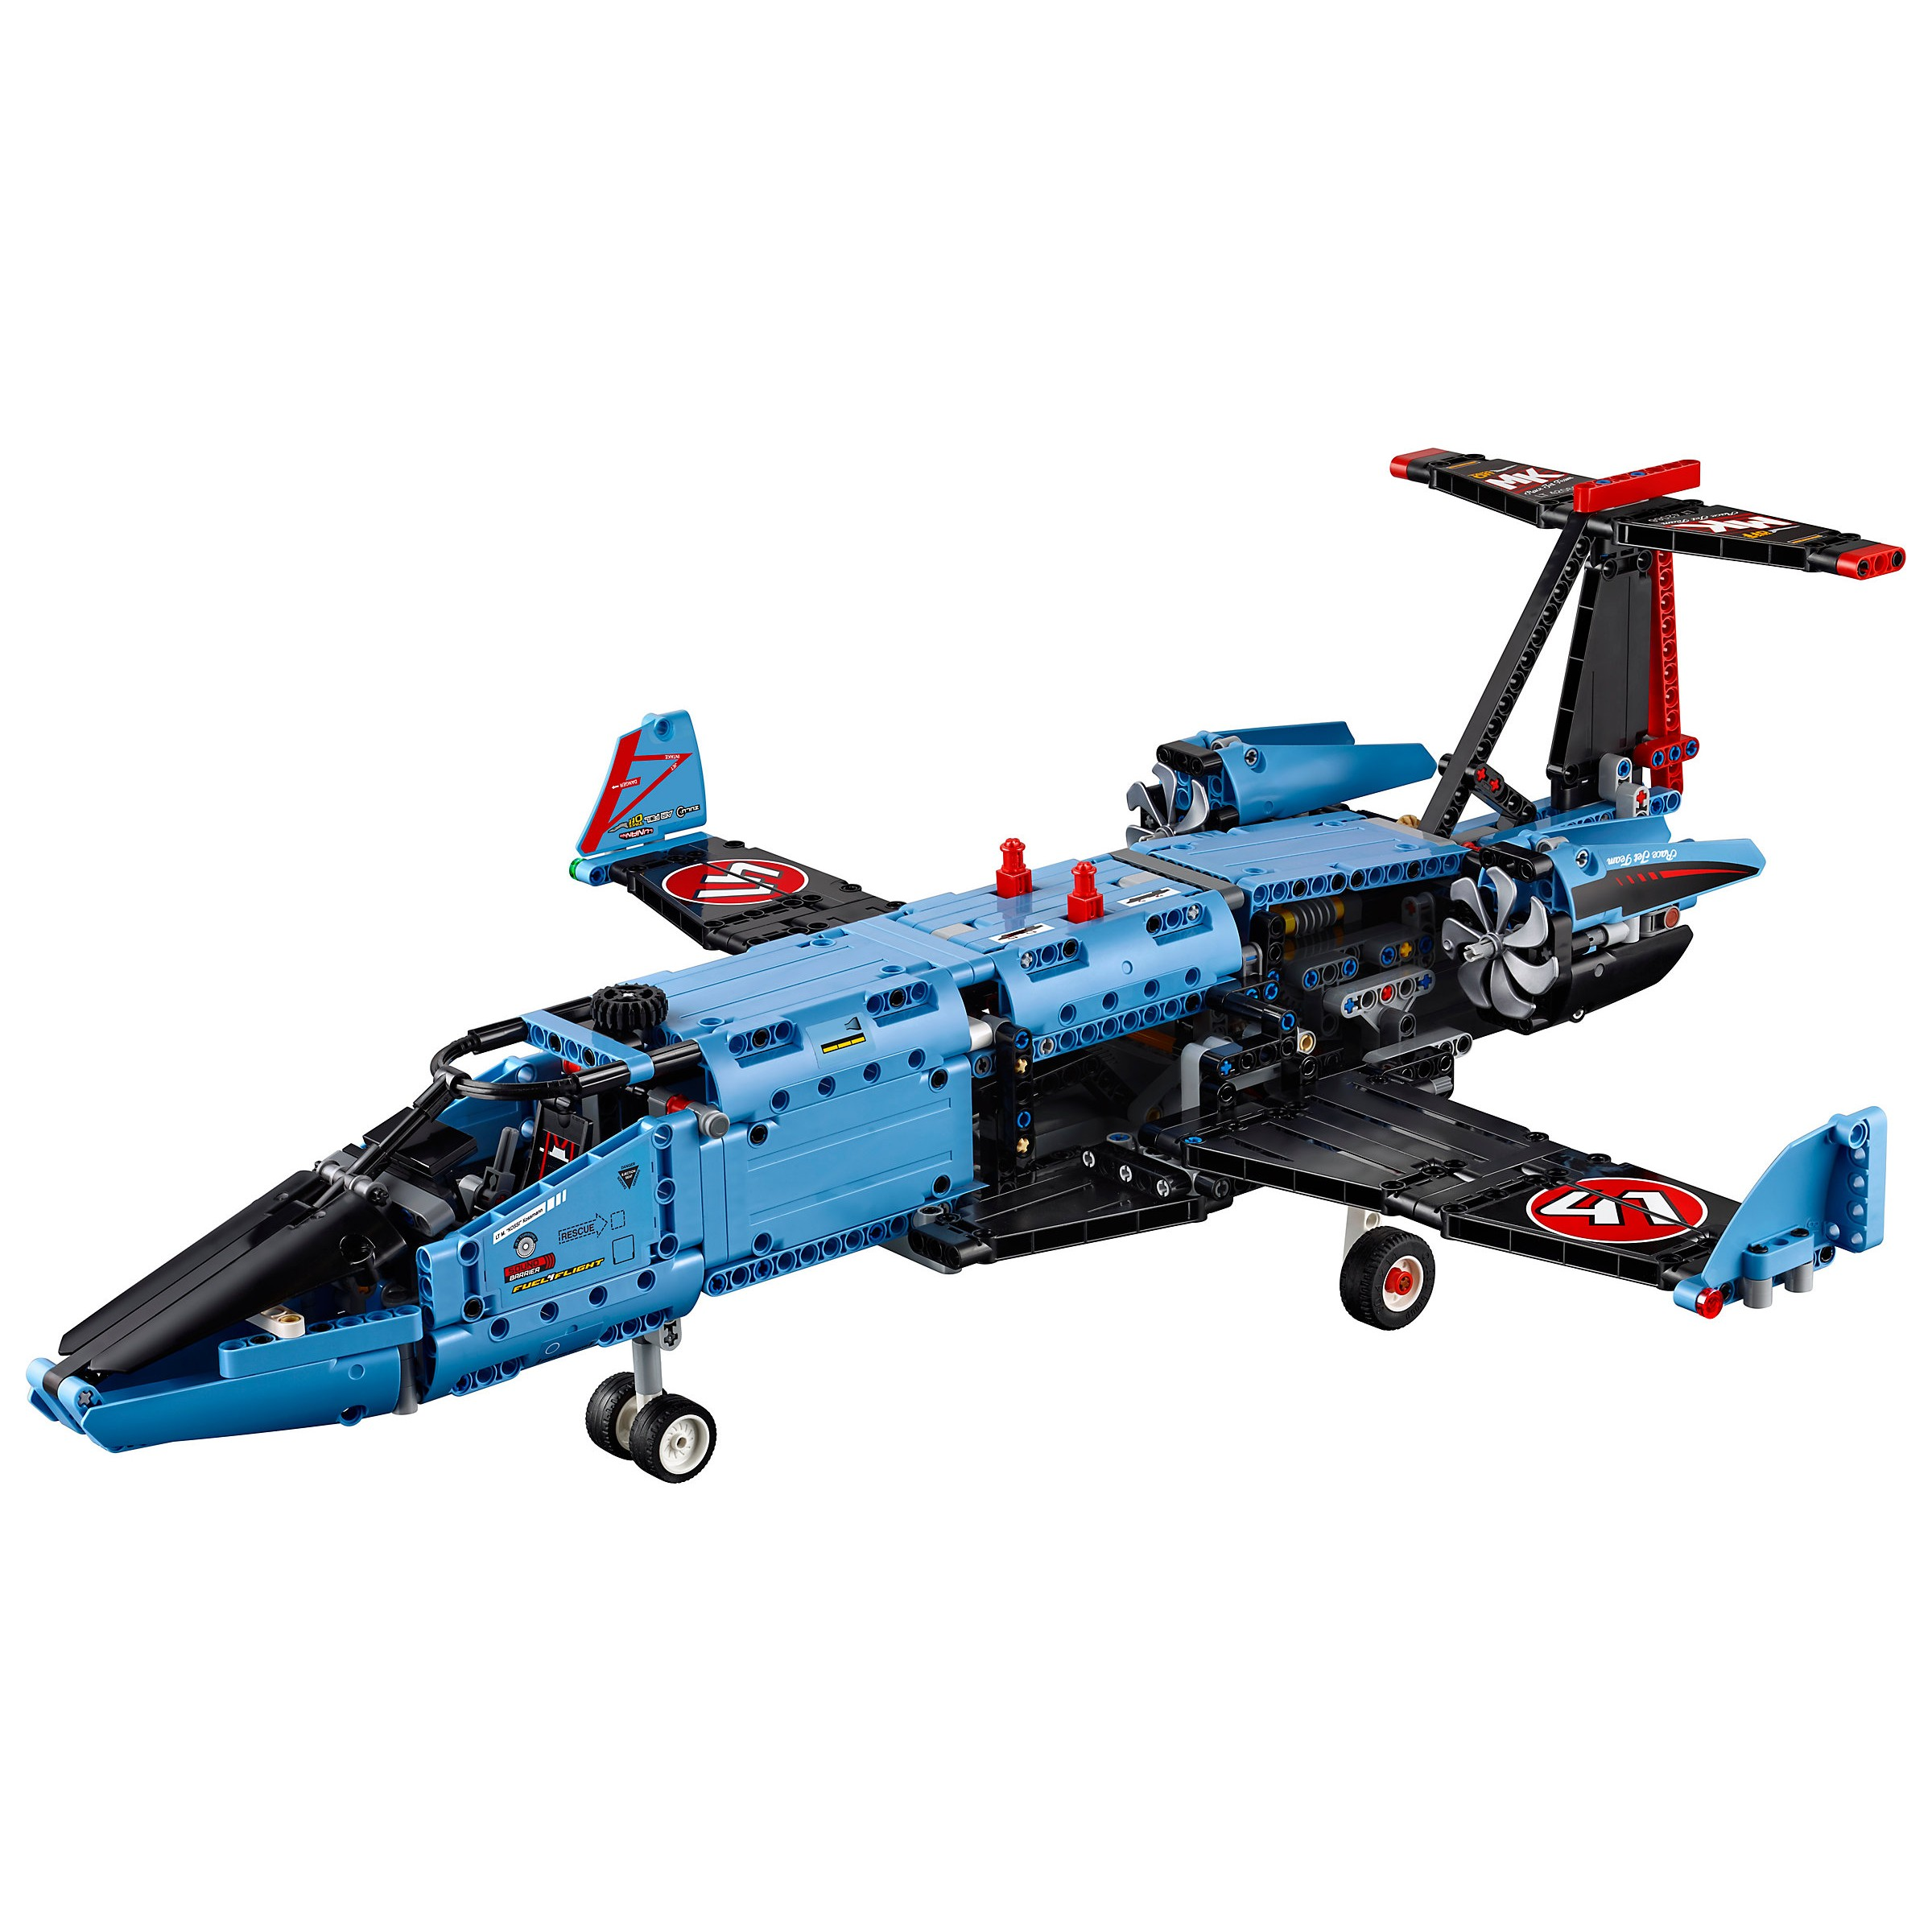 lego 42066 technic air race jet at hobby warehouse. Black Bedroom Furniture Sets. Home Design Ideas